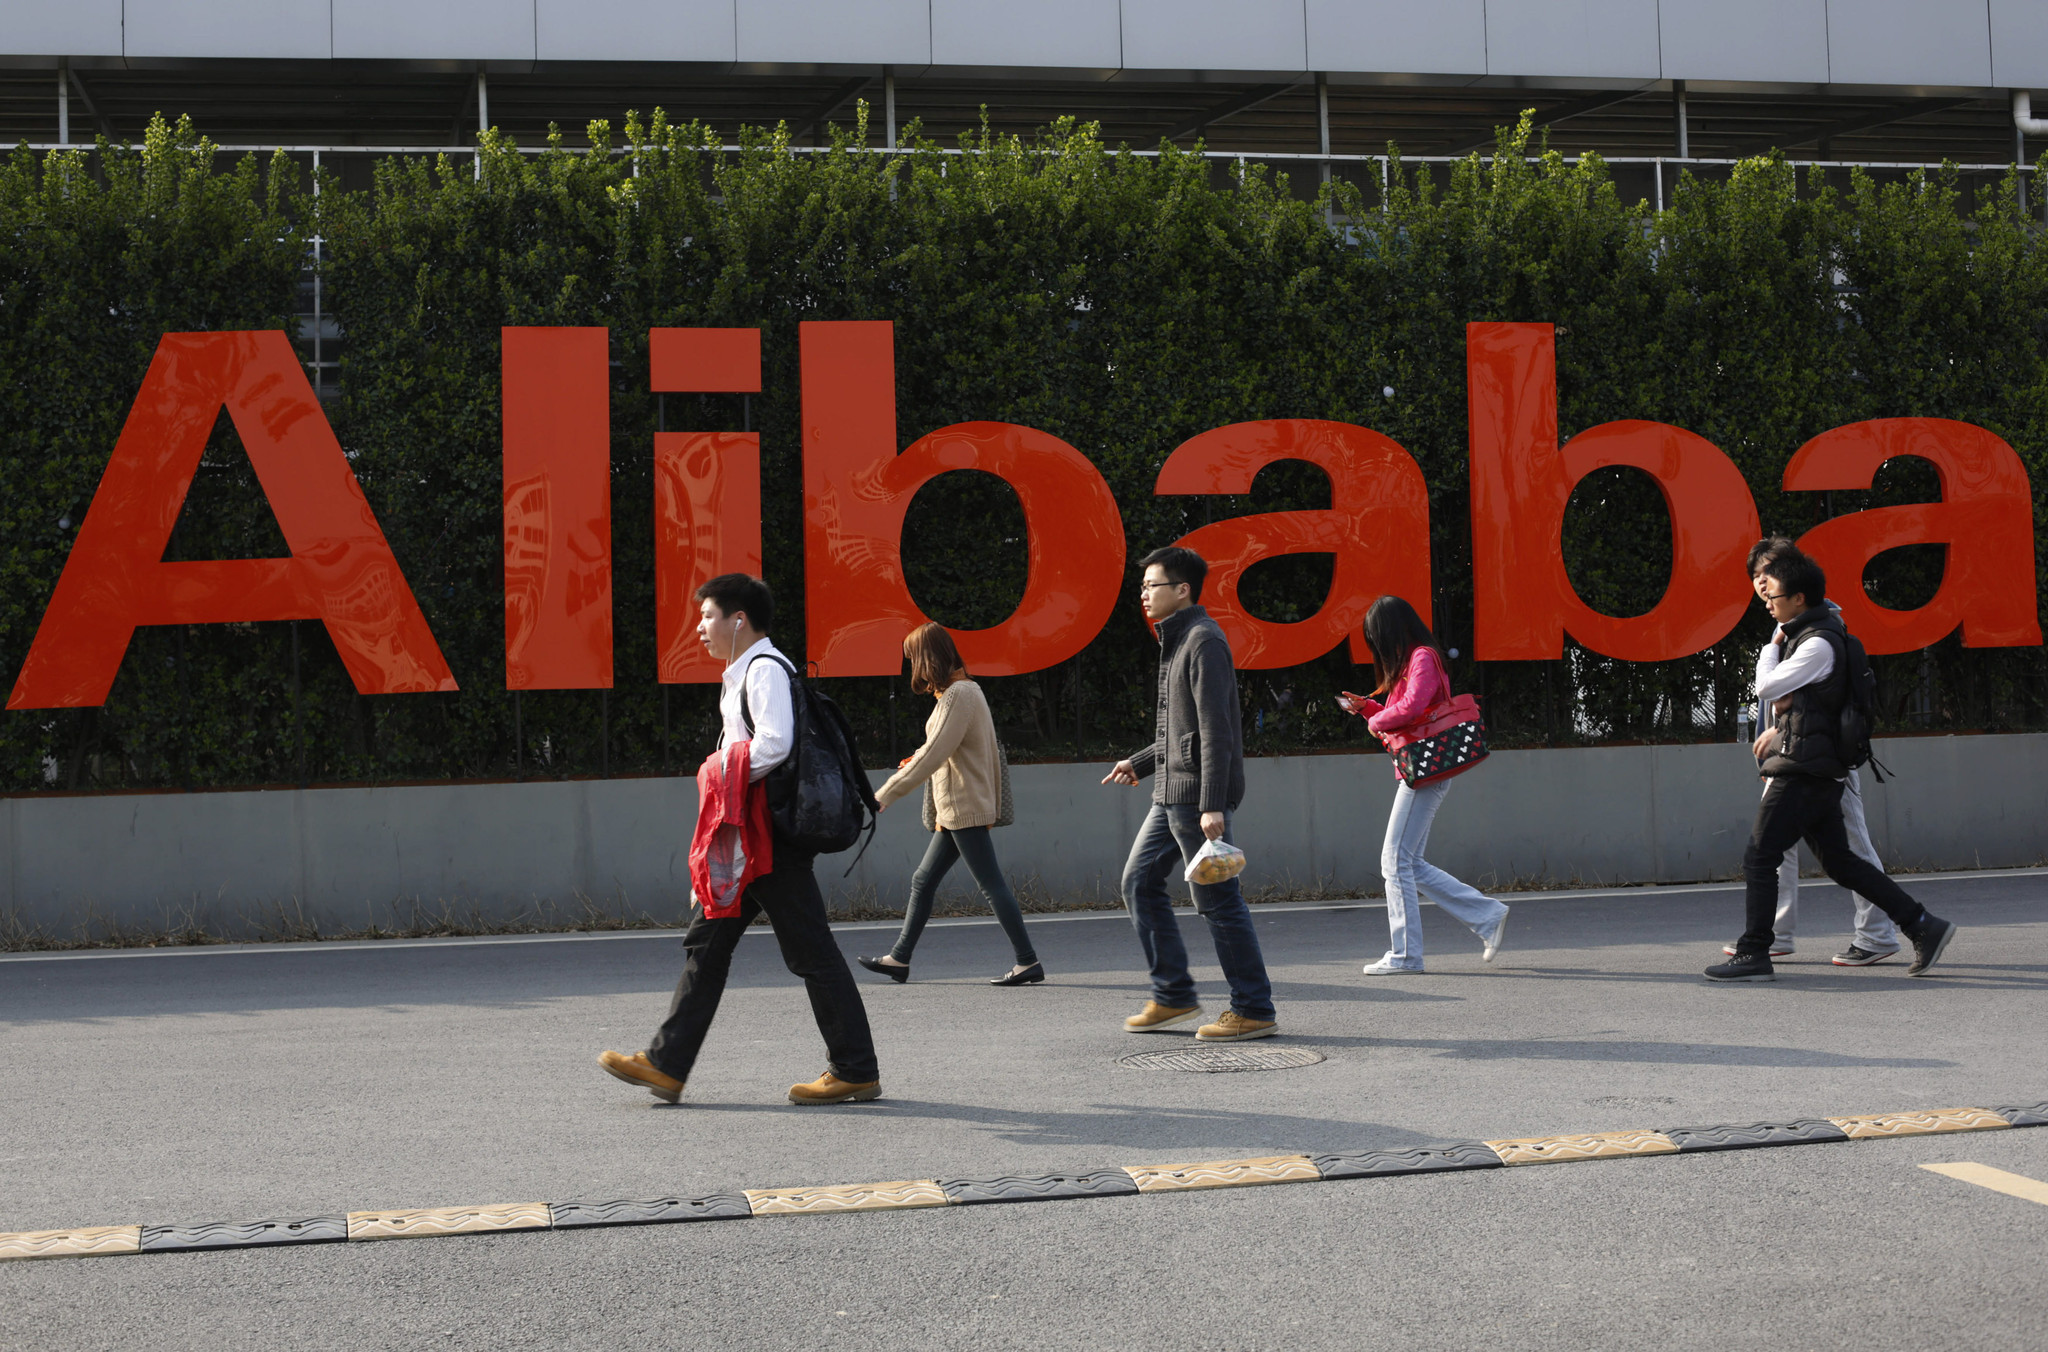 Alibaba sets stock price at $68 on eve of IPO